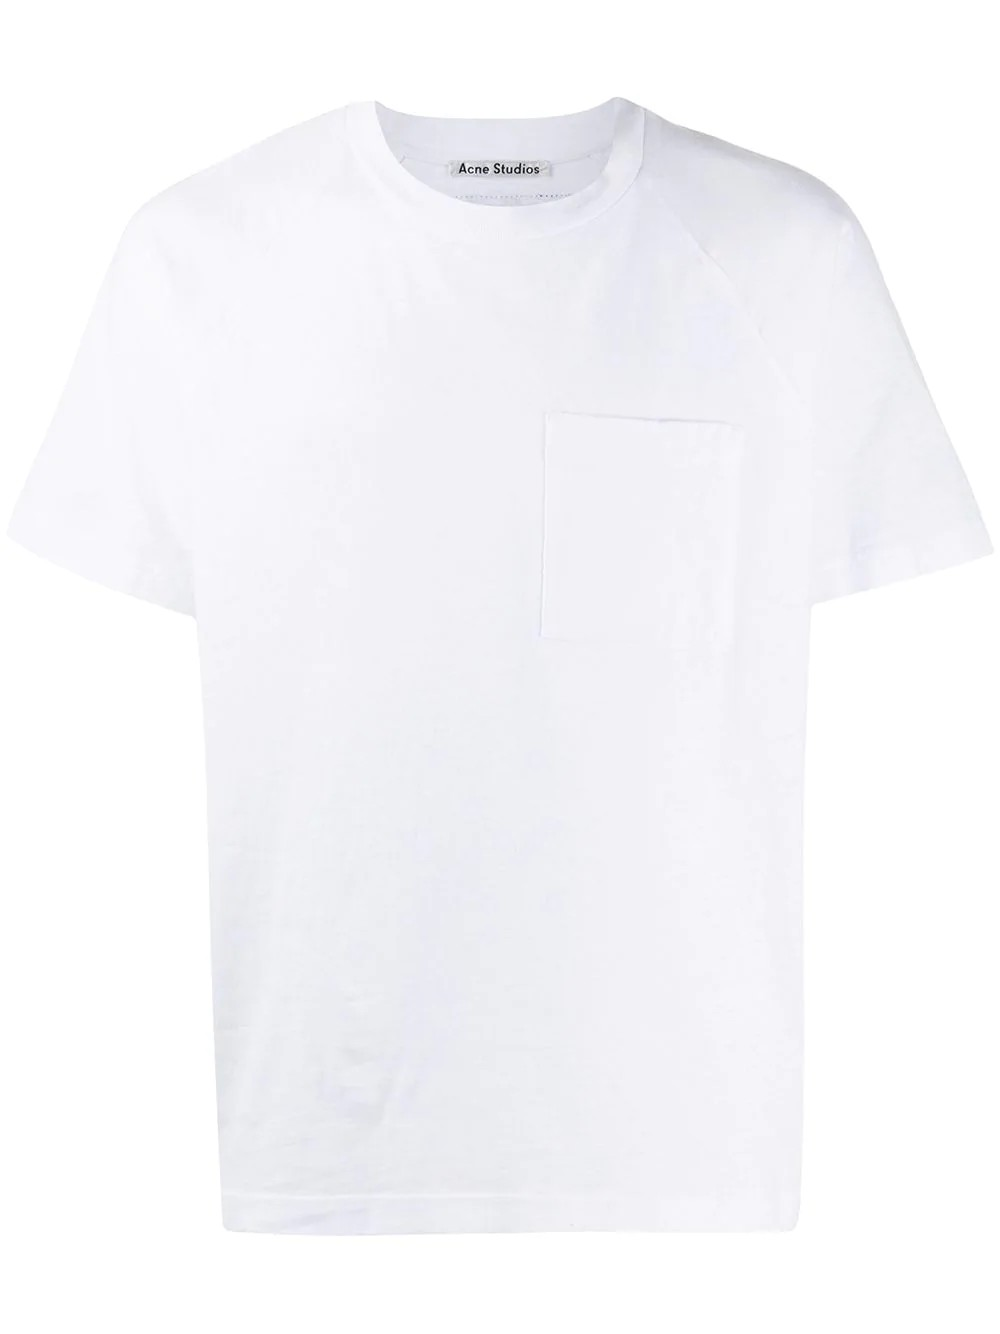 EMERIL REVERSE LABEL T-SHIRTS